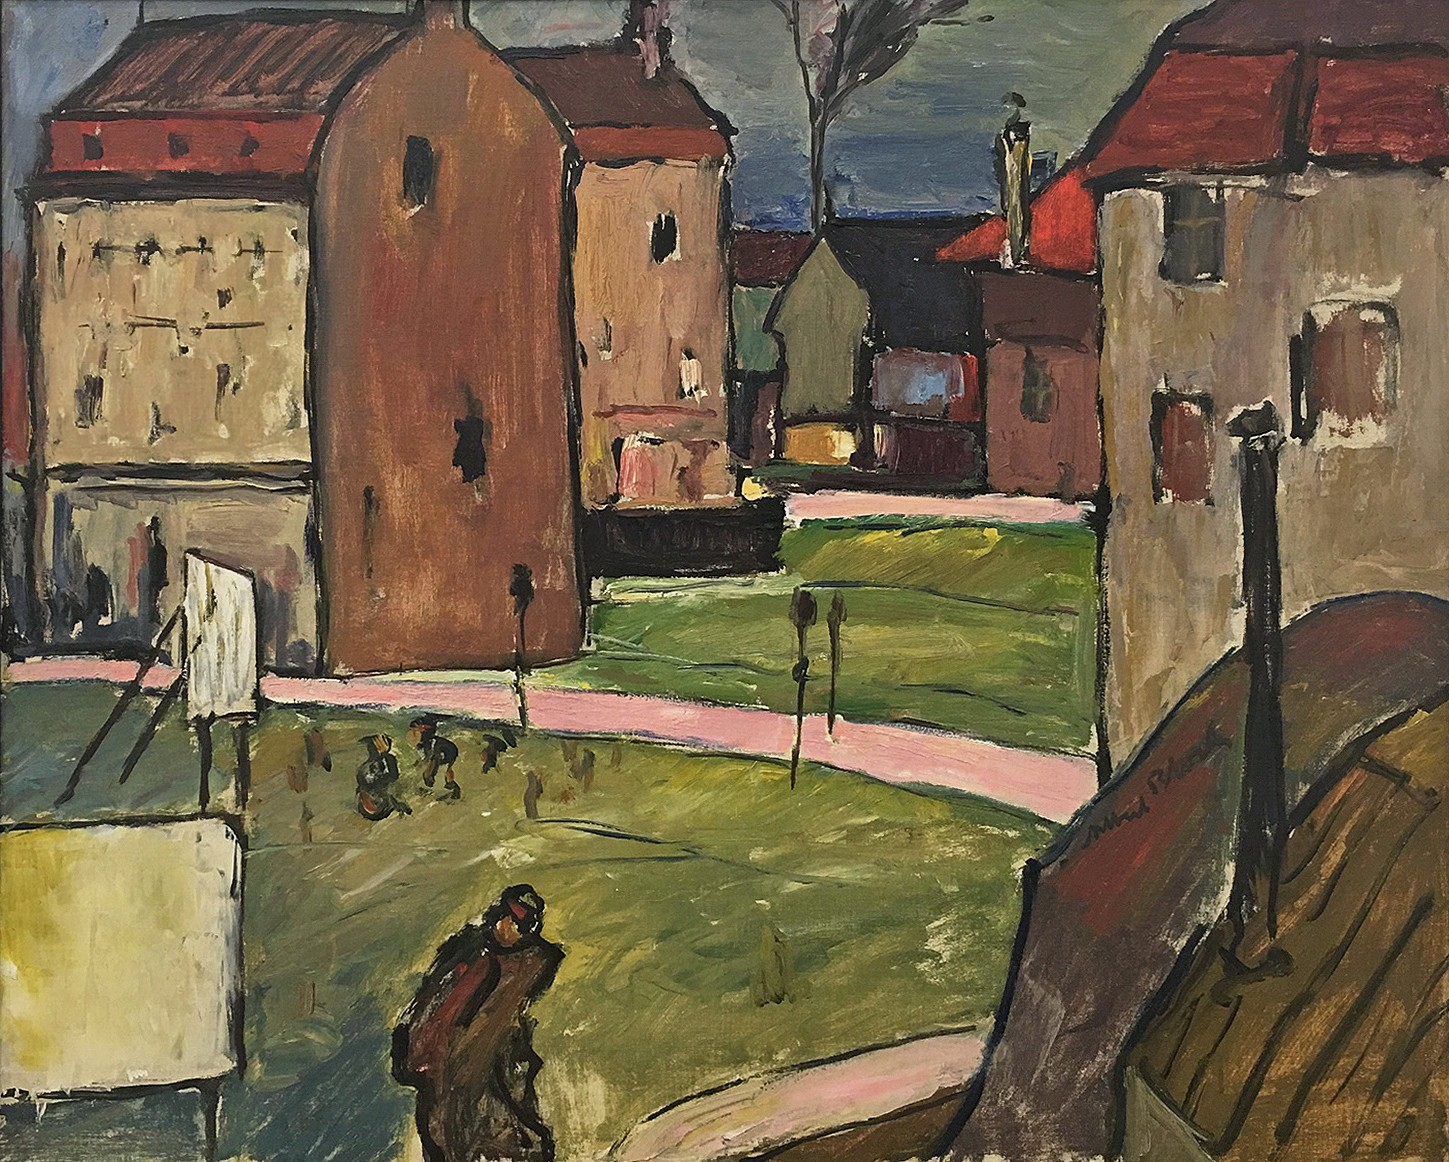 This works depicts a green lawn with a pink road in between tall houses and buildings